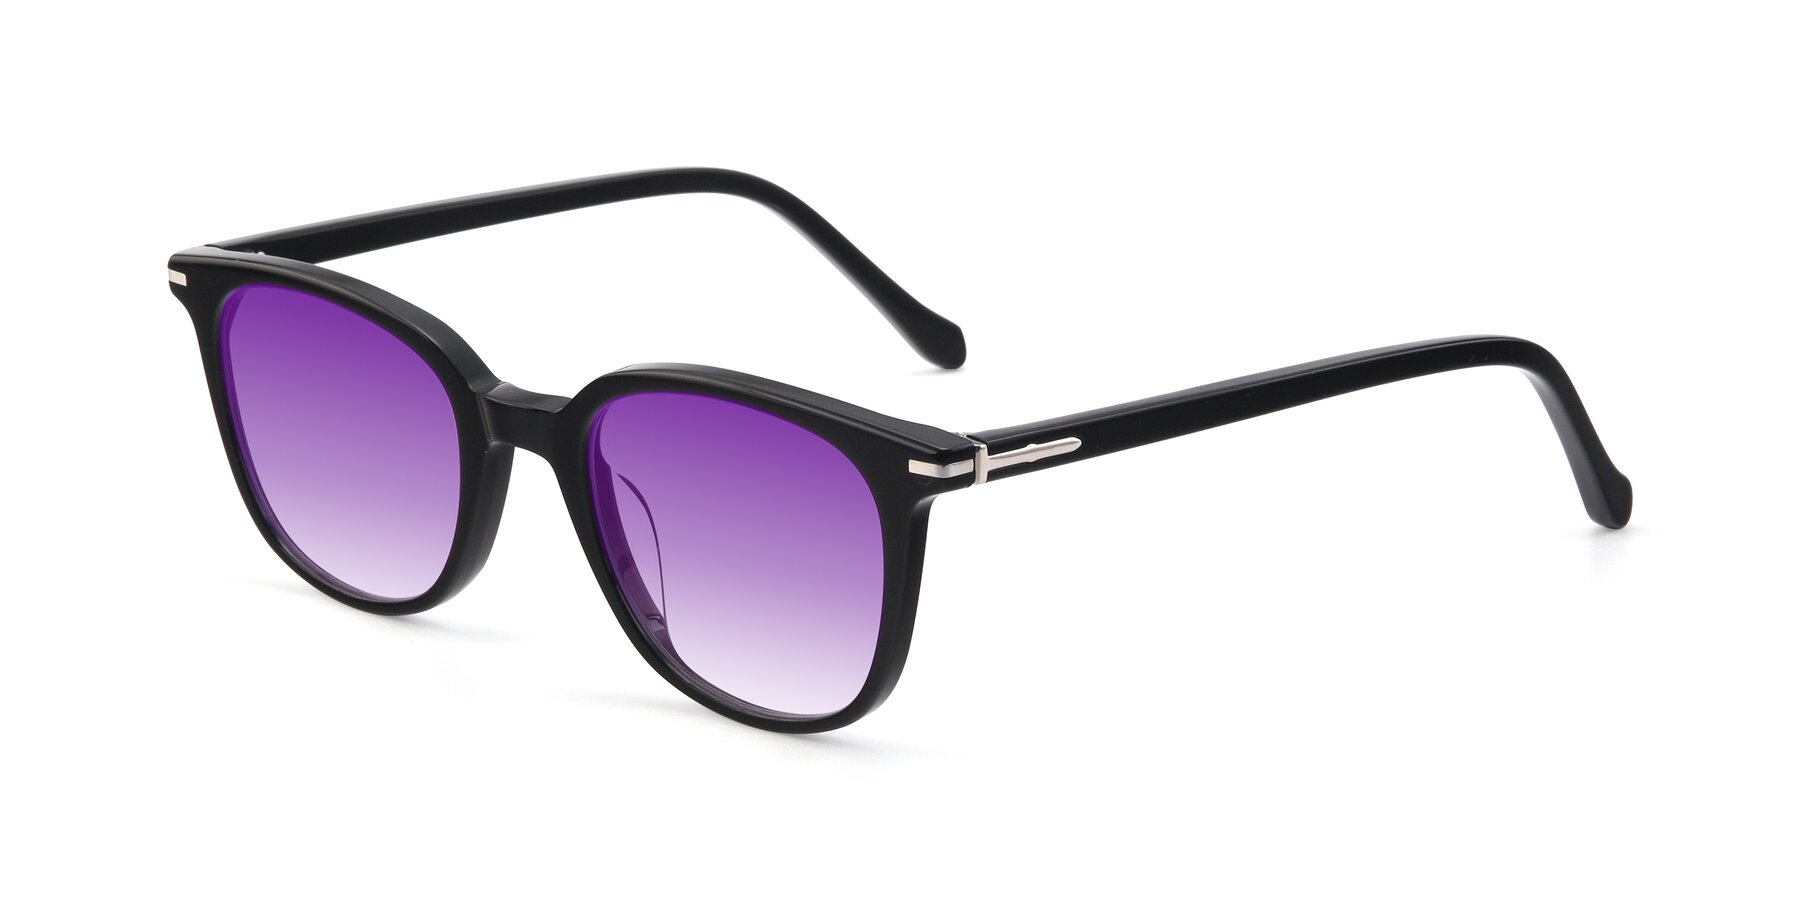 Angle of 17562 in Black with Purple Gradient Lenses